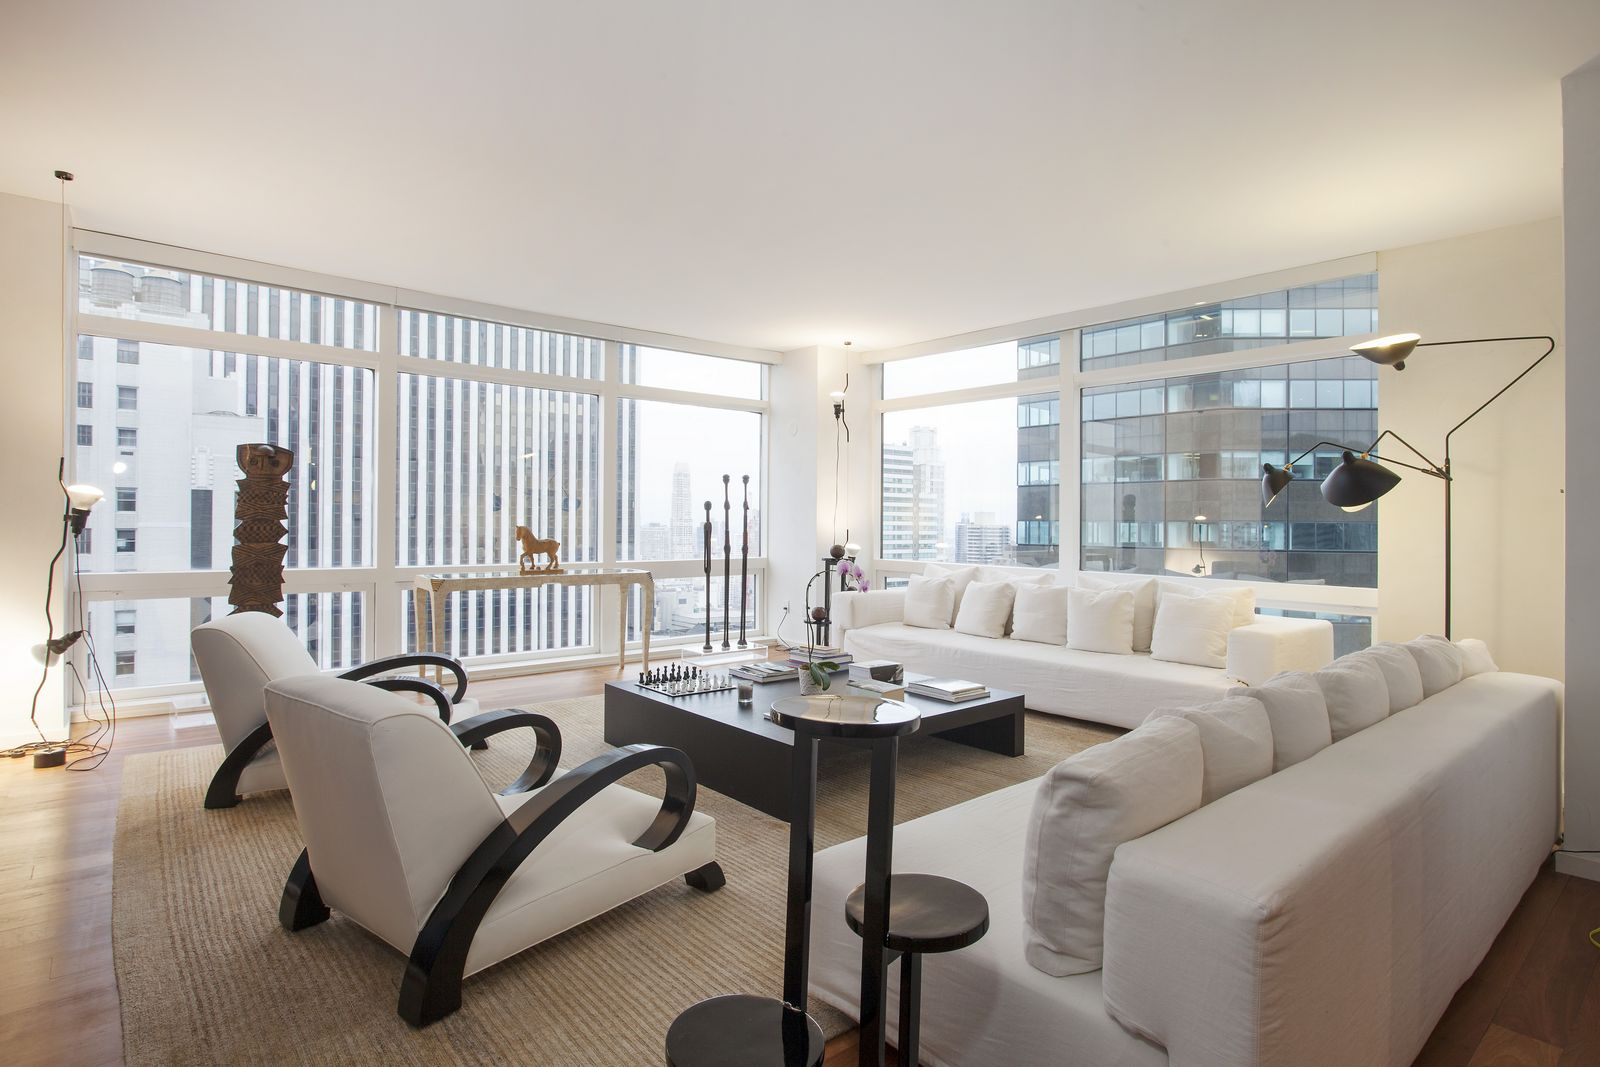 13 Stunning Apartments In New York: Stunning $10 Million New York City Apartment For Sale